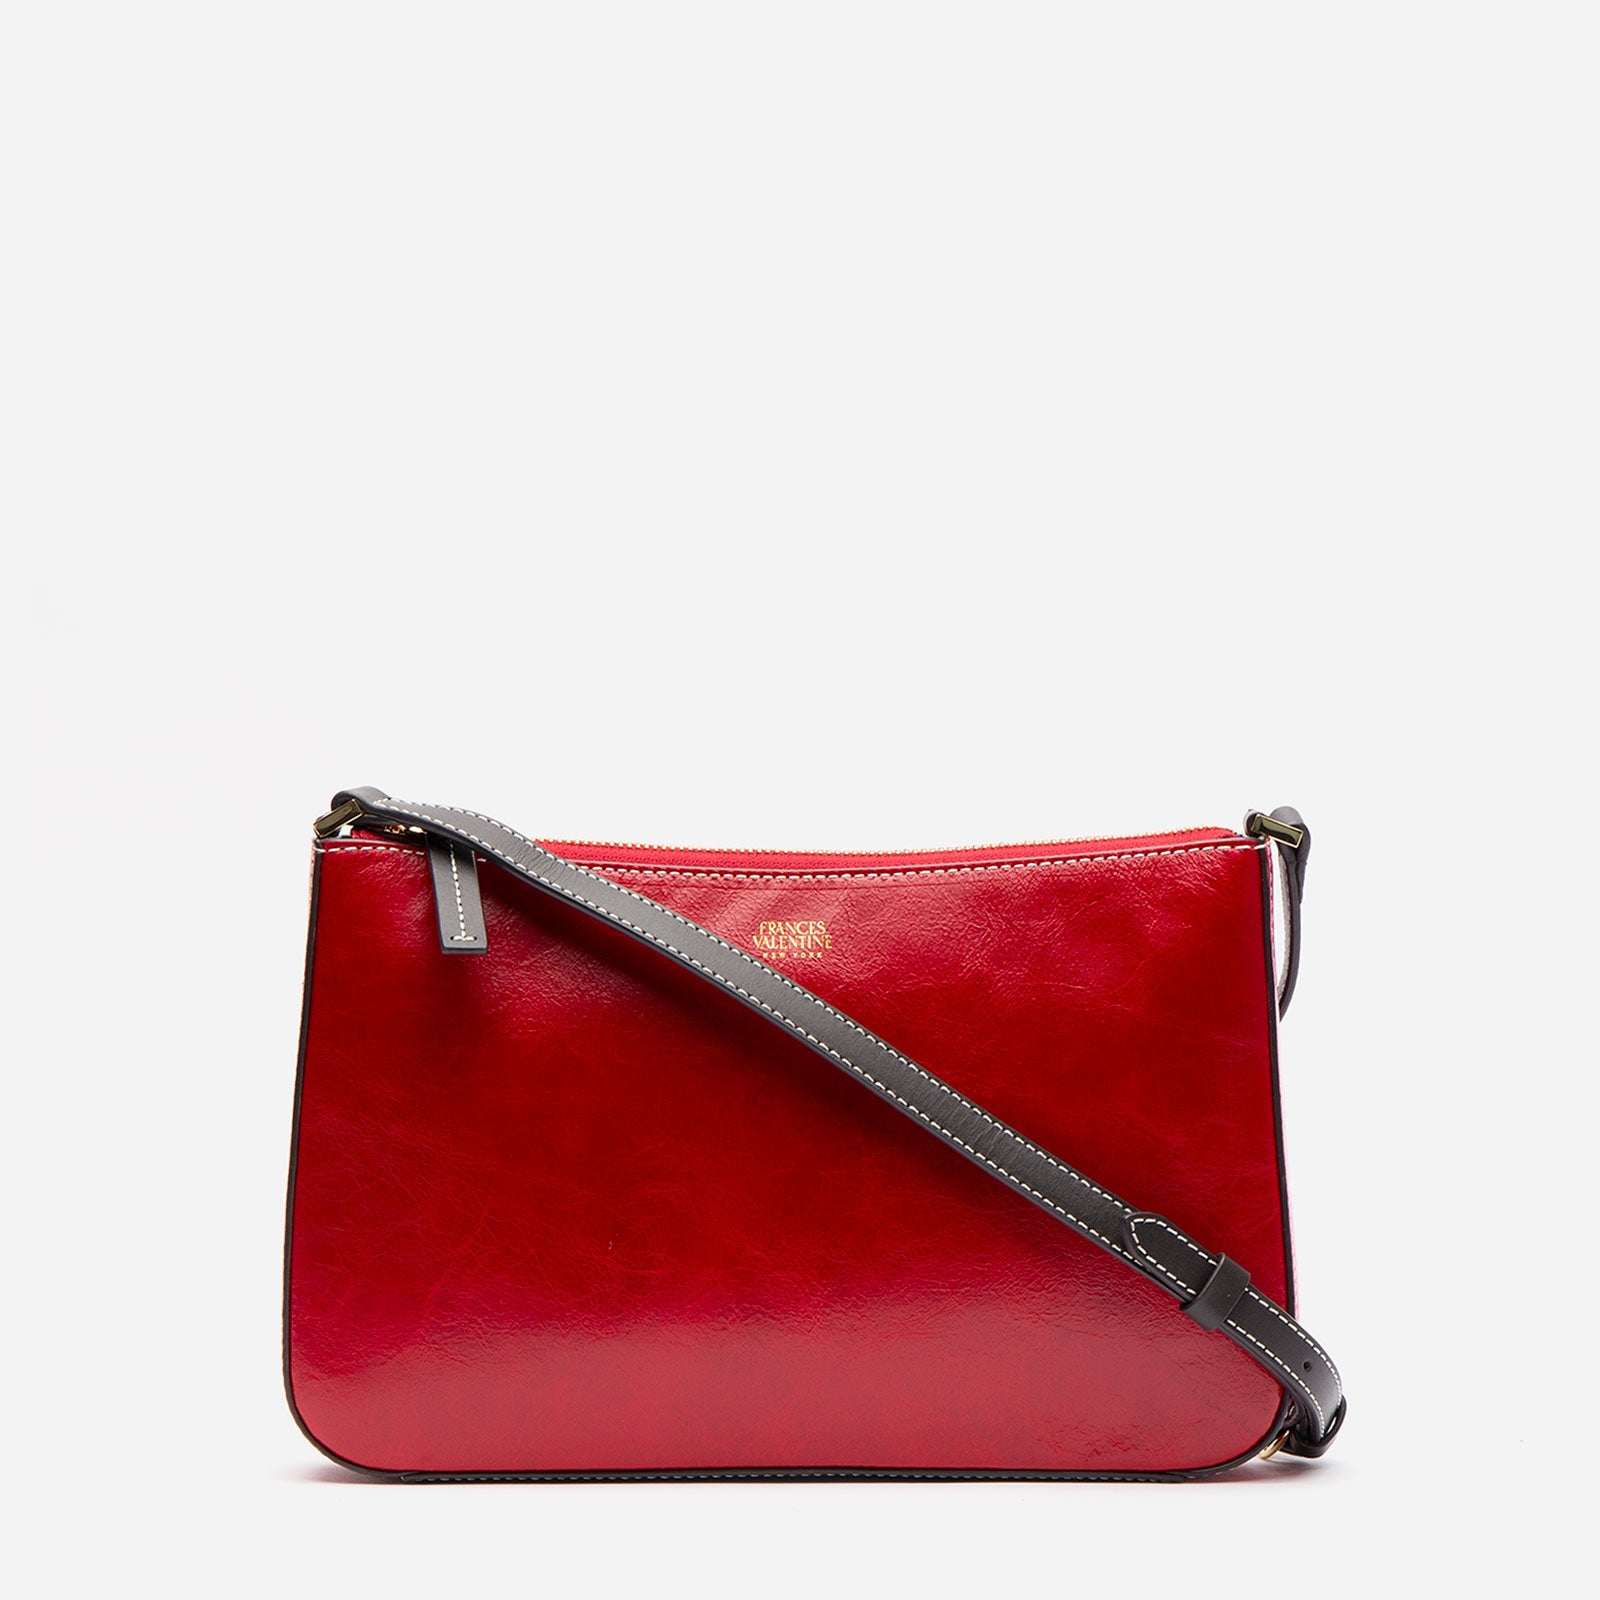 Poppy Crossbody Naplak Leather Red Pink - Frances Valentine